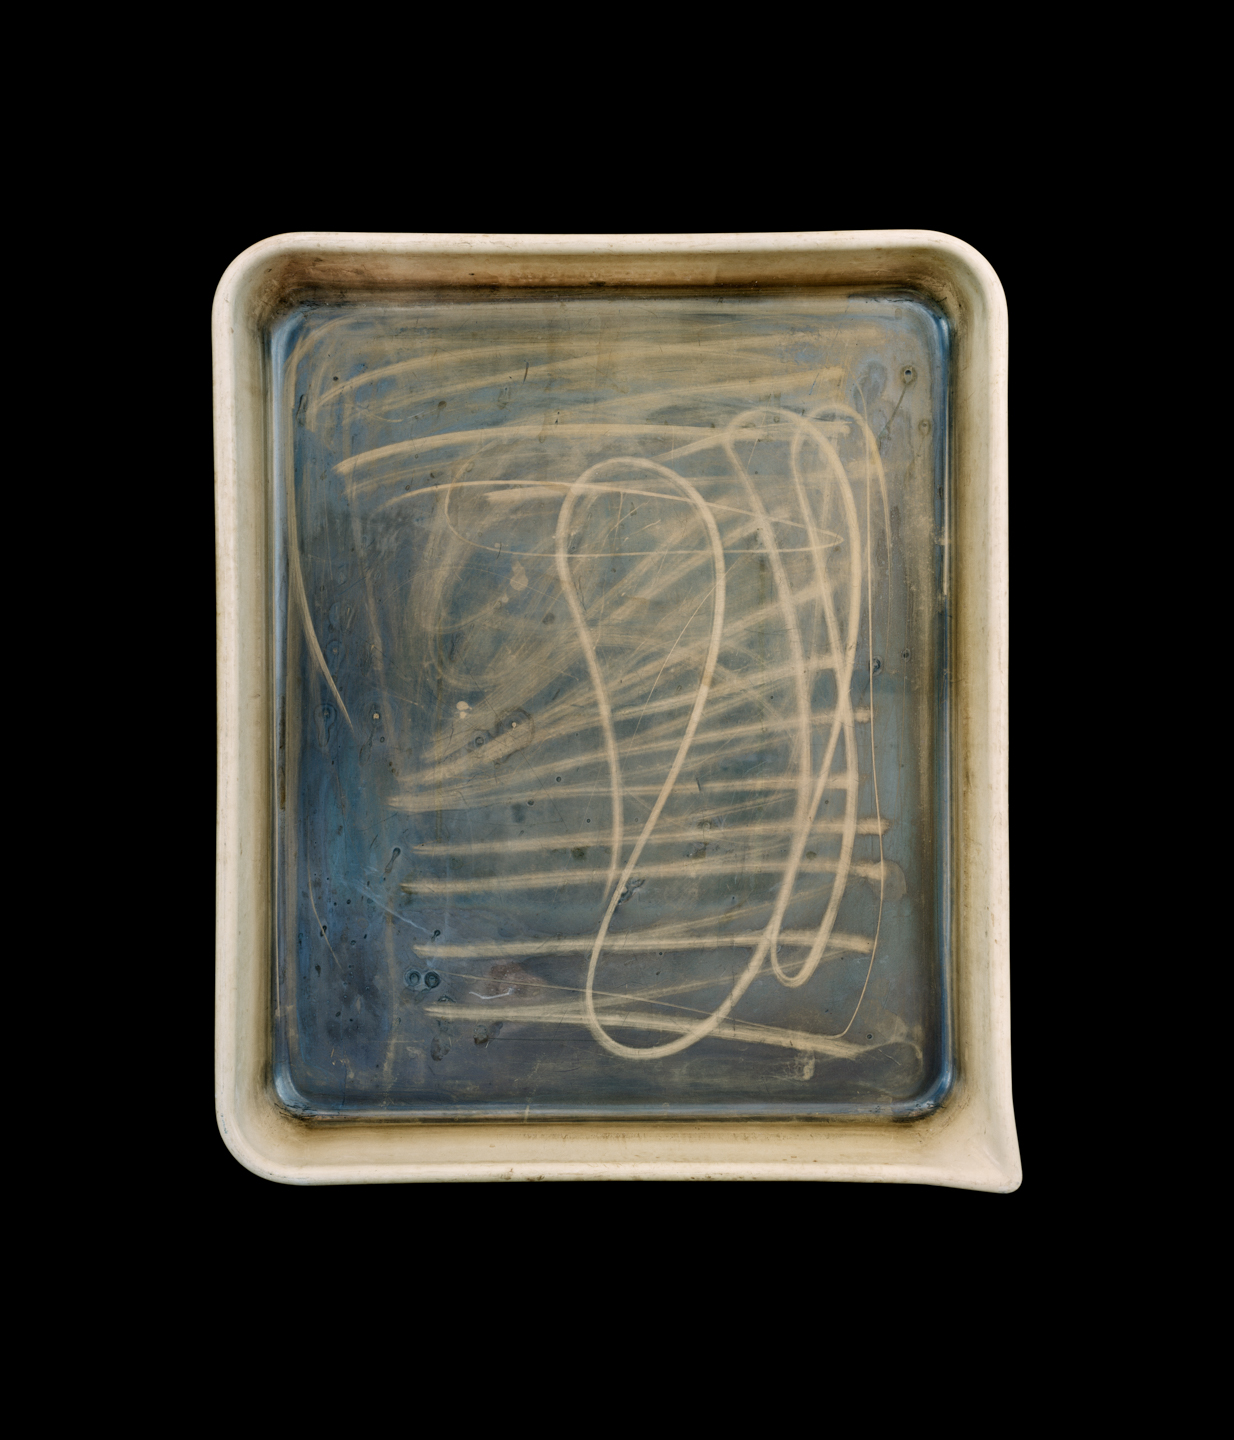 Eileen Travell's Developer Tray, 2010